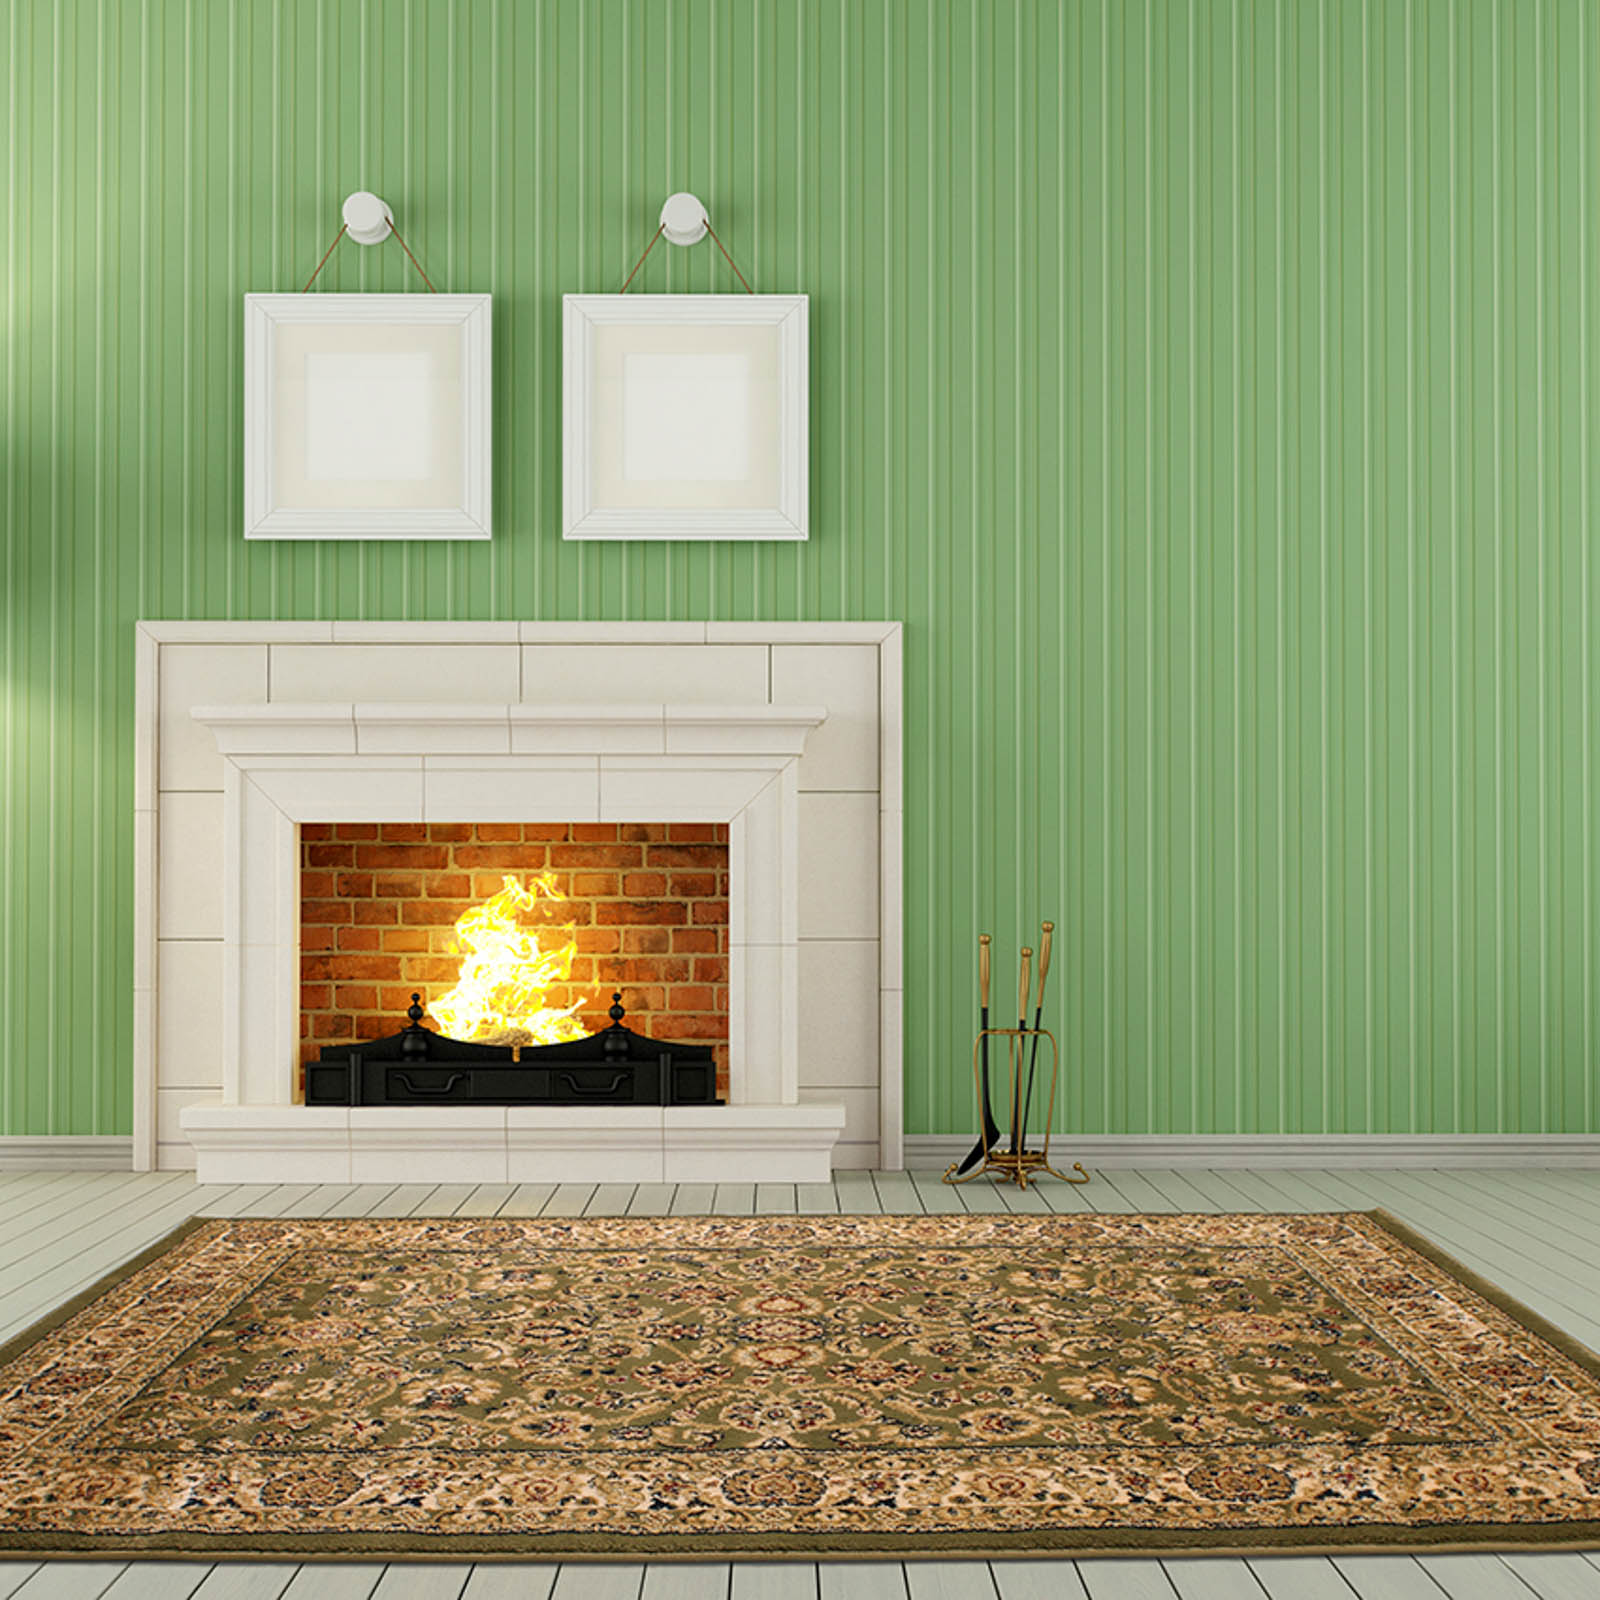 Tabriz Traditional Rugs 001 in Green